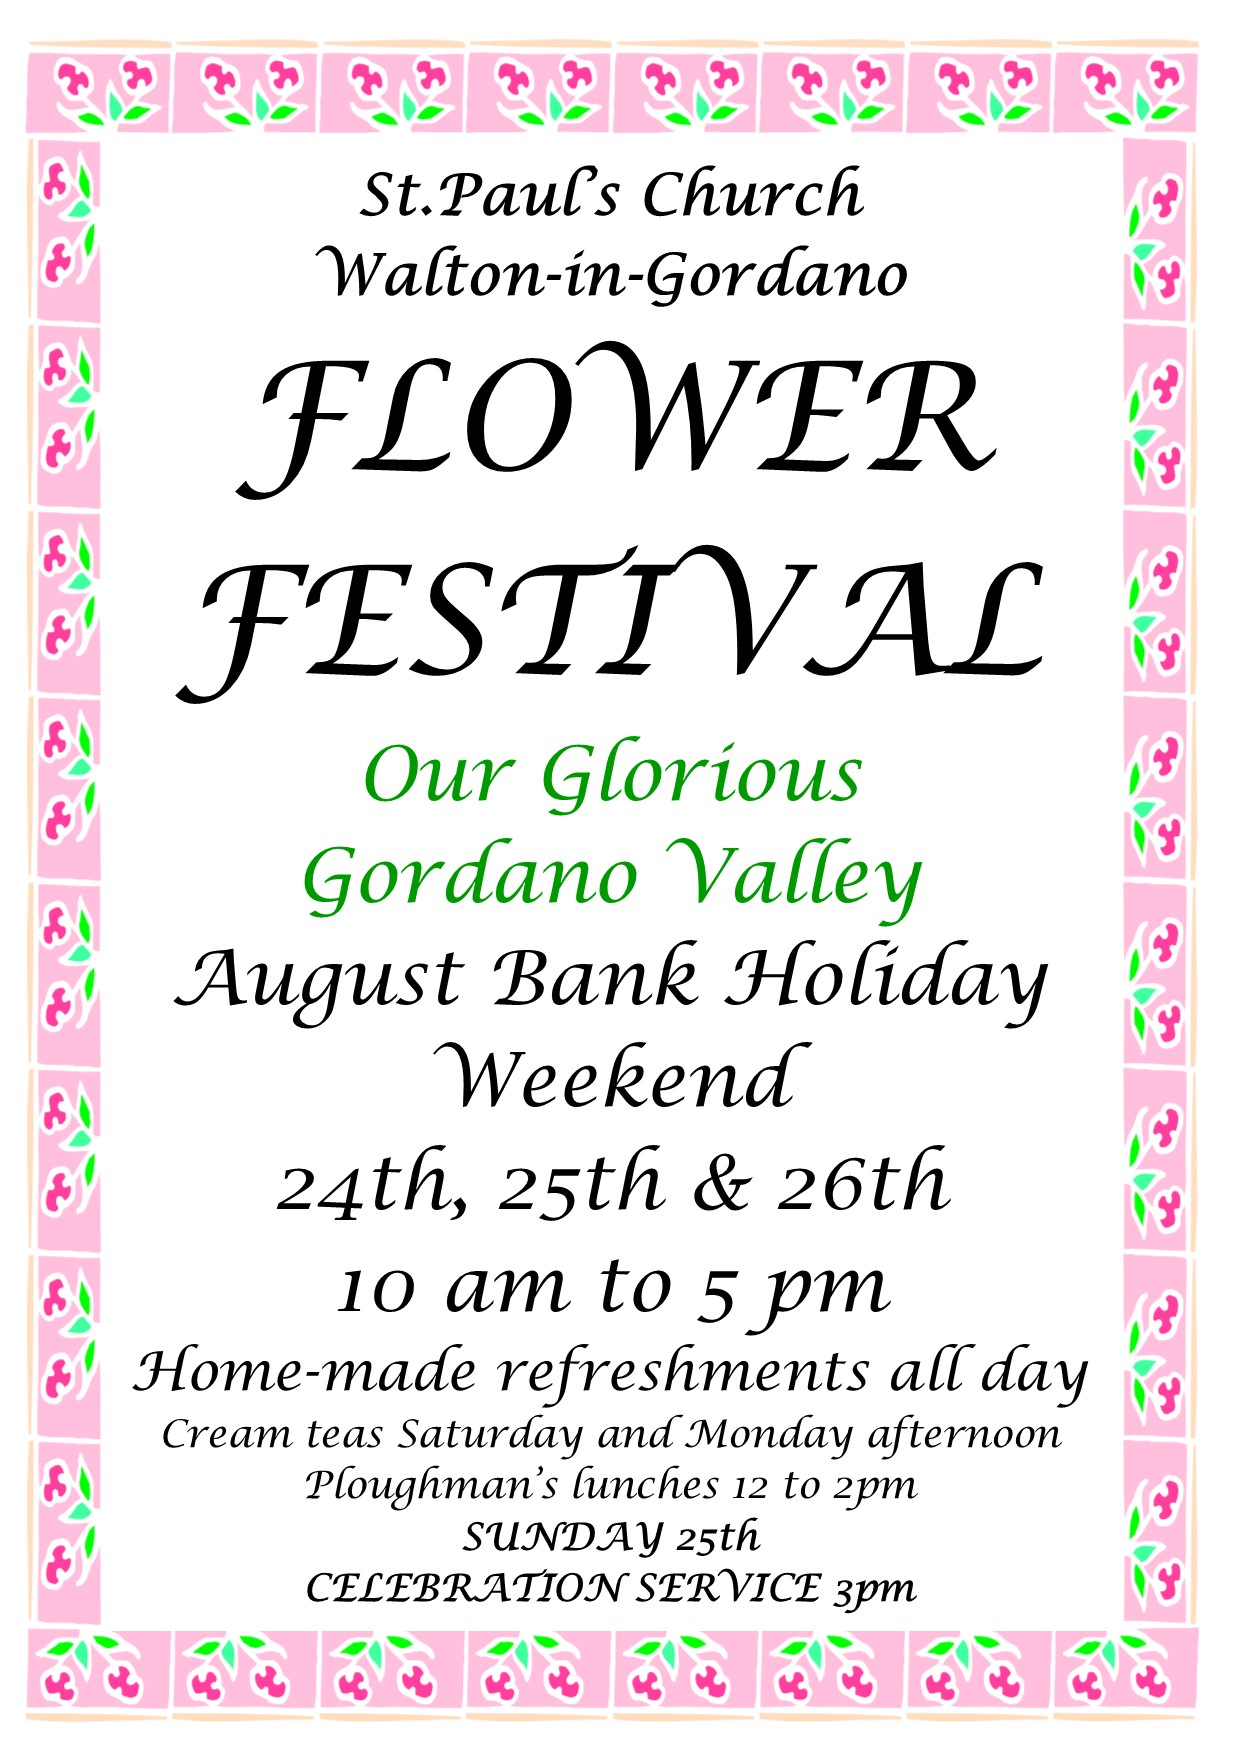 flower festival  little poster 1 graphic.jpg